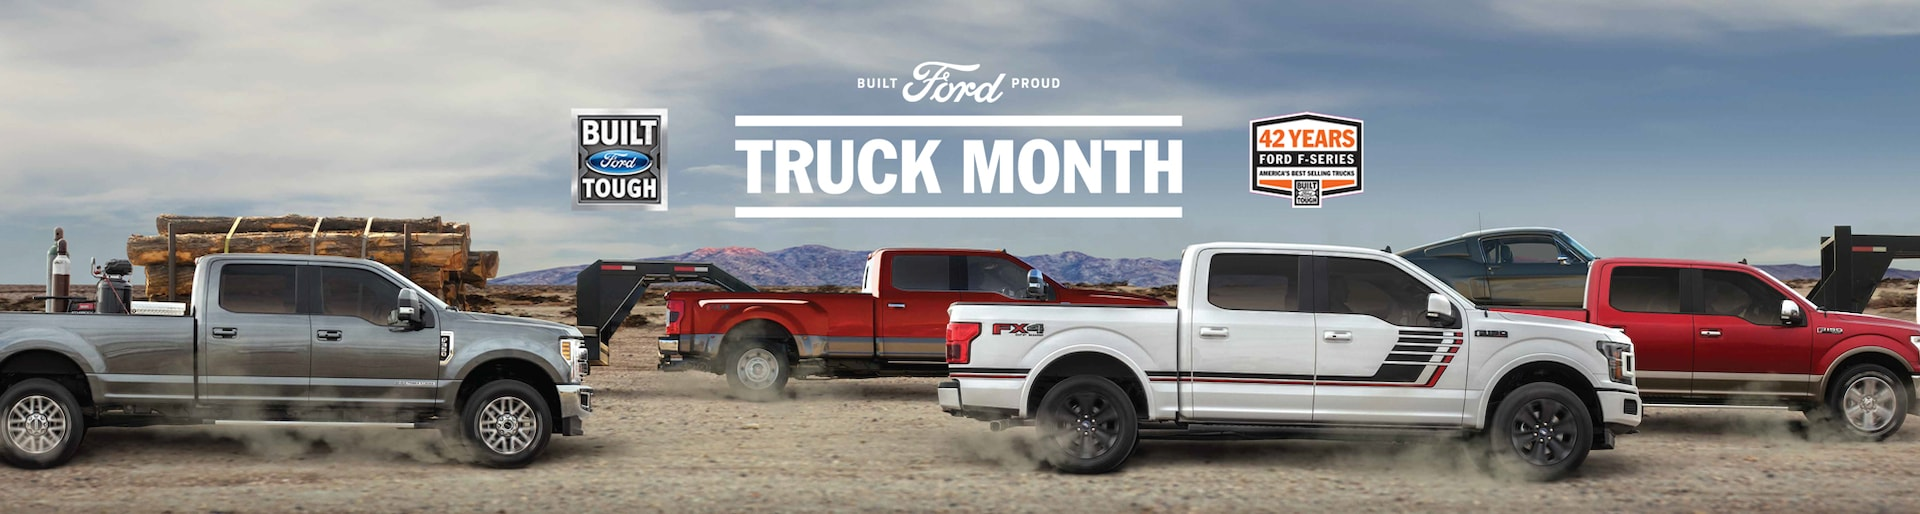 Build Price And Configure Your New Ford Valley Ford Truck >> Antelope Valley Ford New 2019 Ford Trucks Used Ford Suvs Service